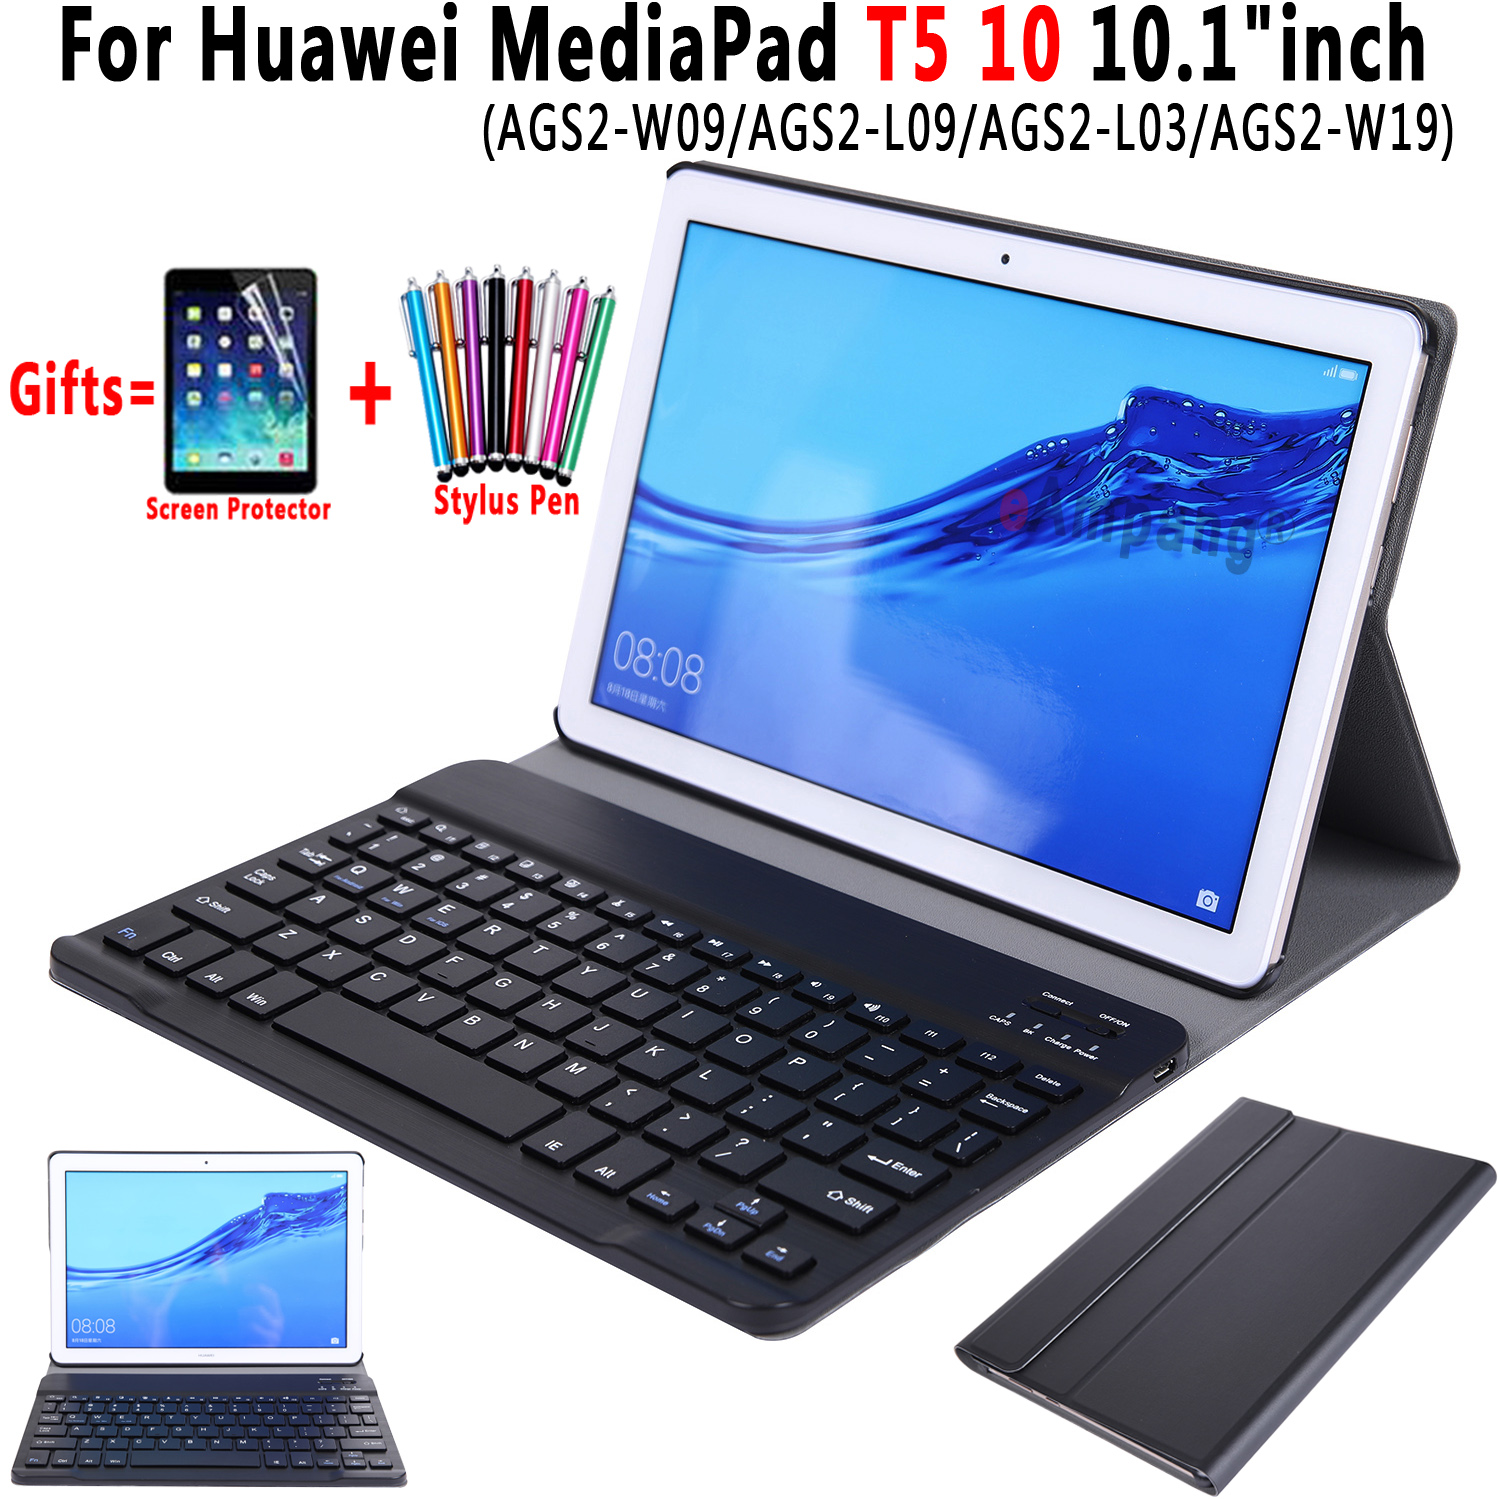 For Huawei MediaPad T5 10 Keyboard Case 10.1 Inch AGS2-W09 AGS2-L09 AGS2-L03 Slim Bluetooth Keyboard Leather Case Cover Funda